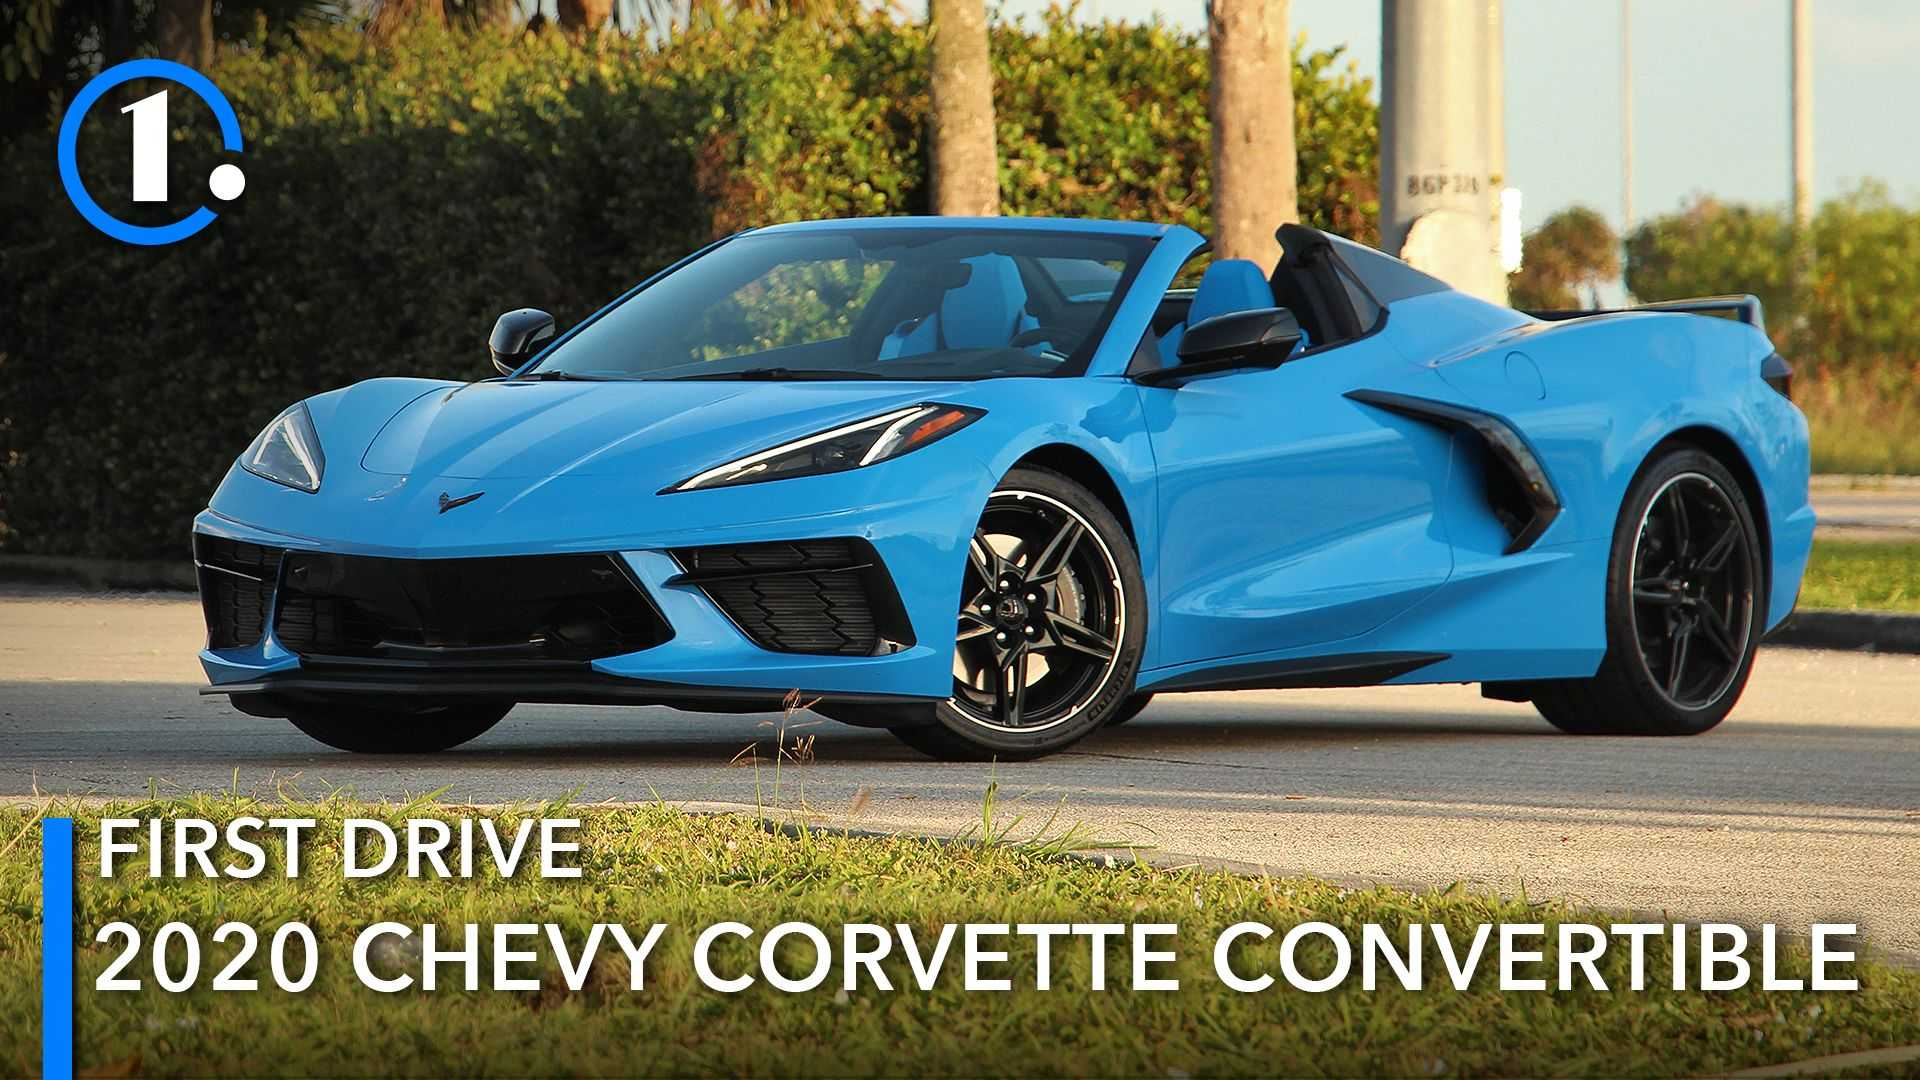 2020 Chevrolet Corvette Convertible First Drive Review: Sky's The Limit